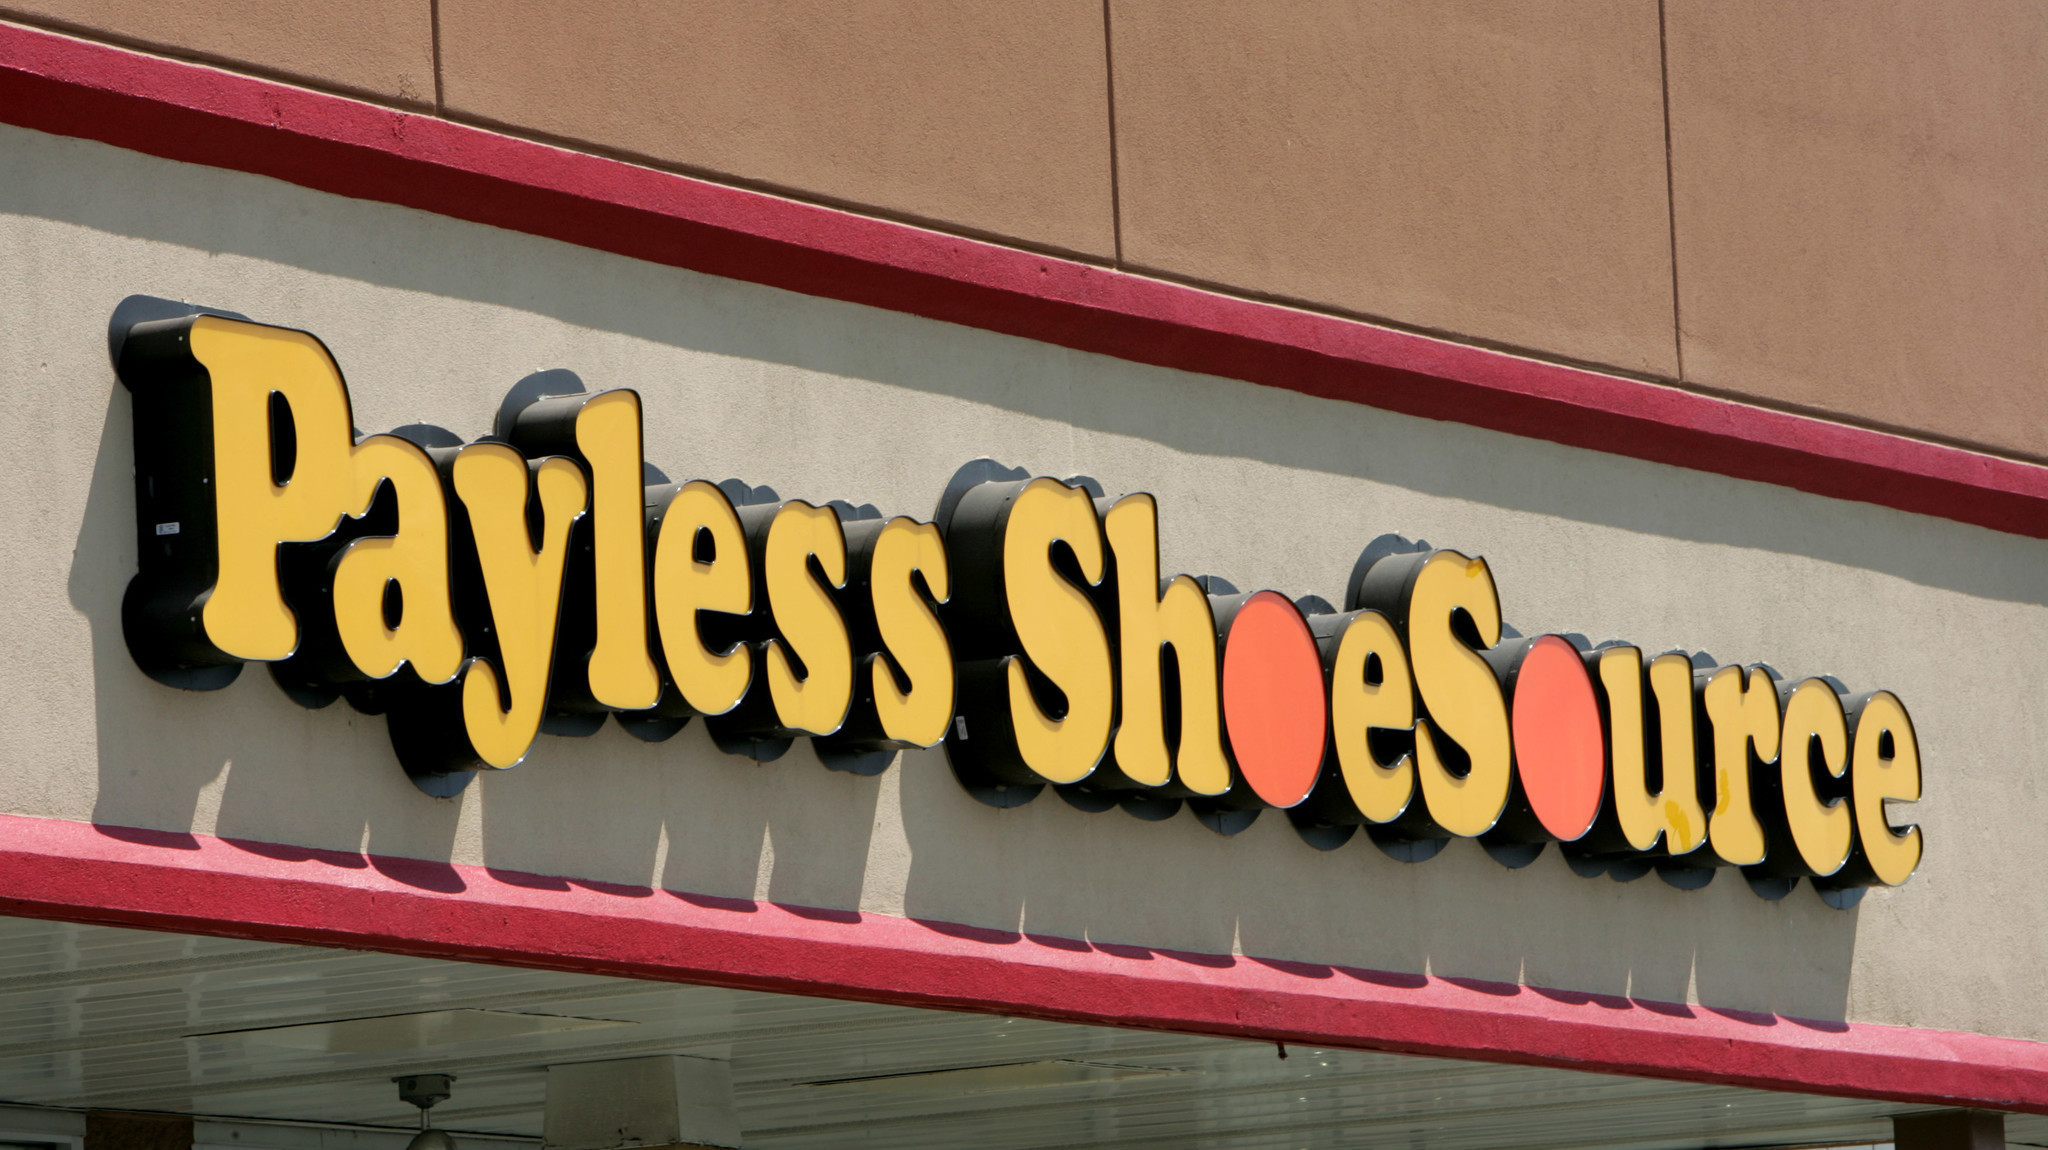 payless shoesource files for bankruptcy protection la times